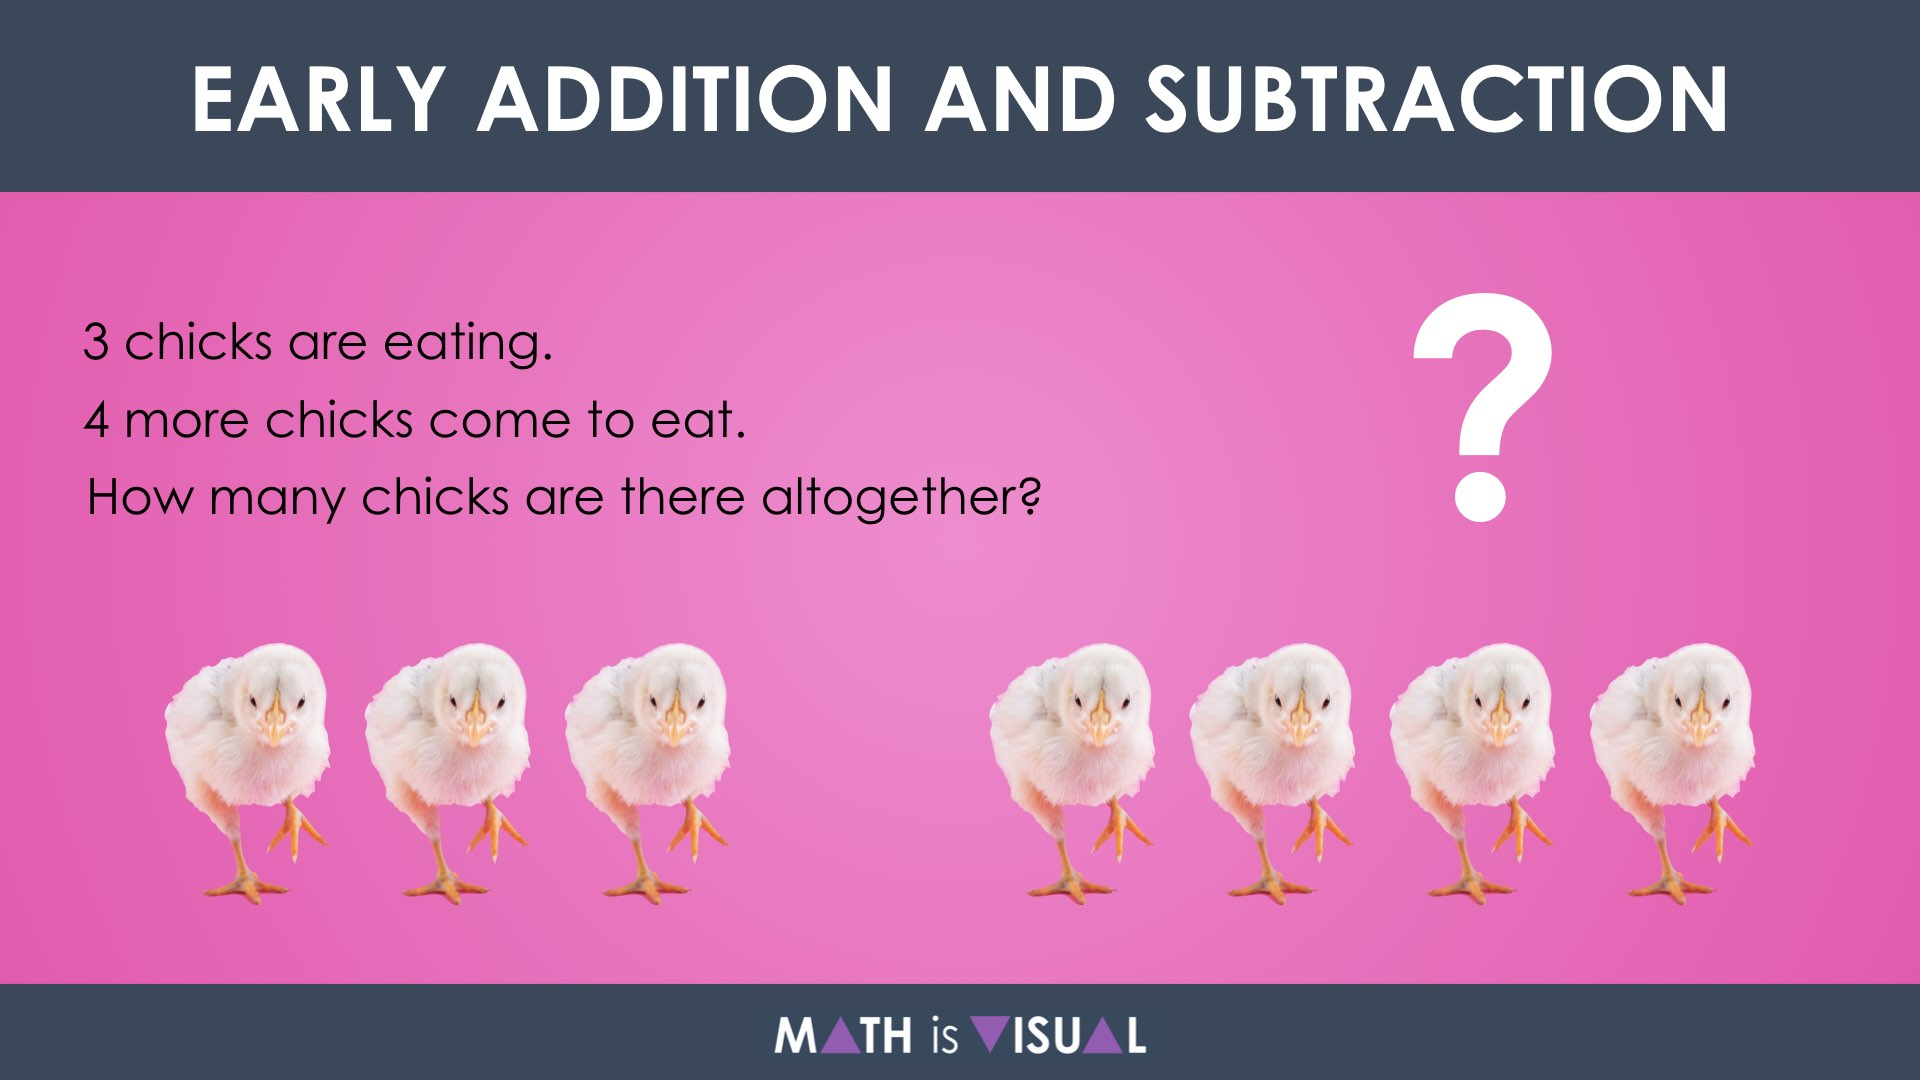 early addition and subtraction question structures 004 visual prompt